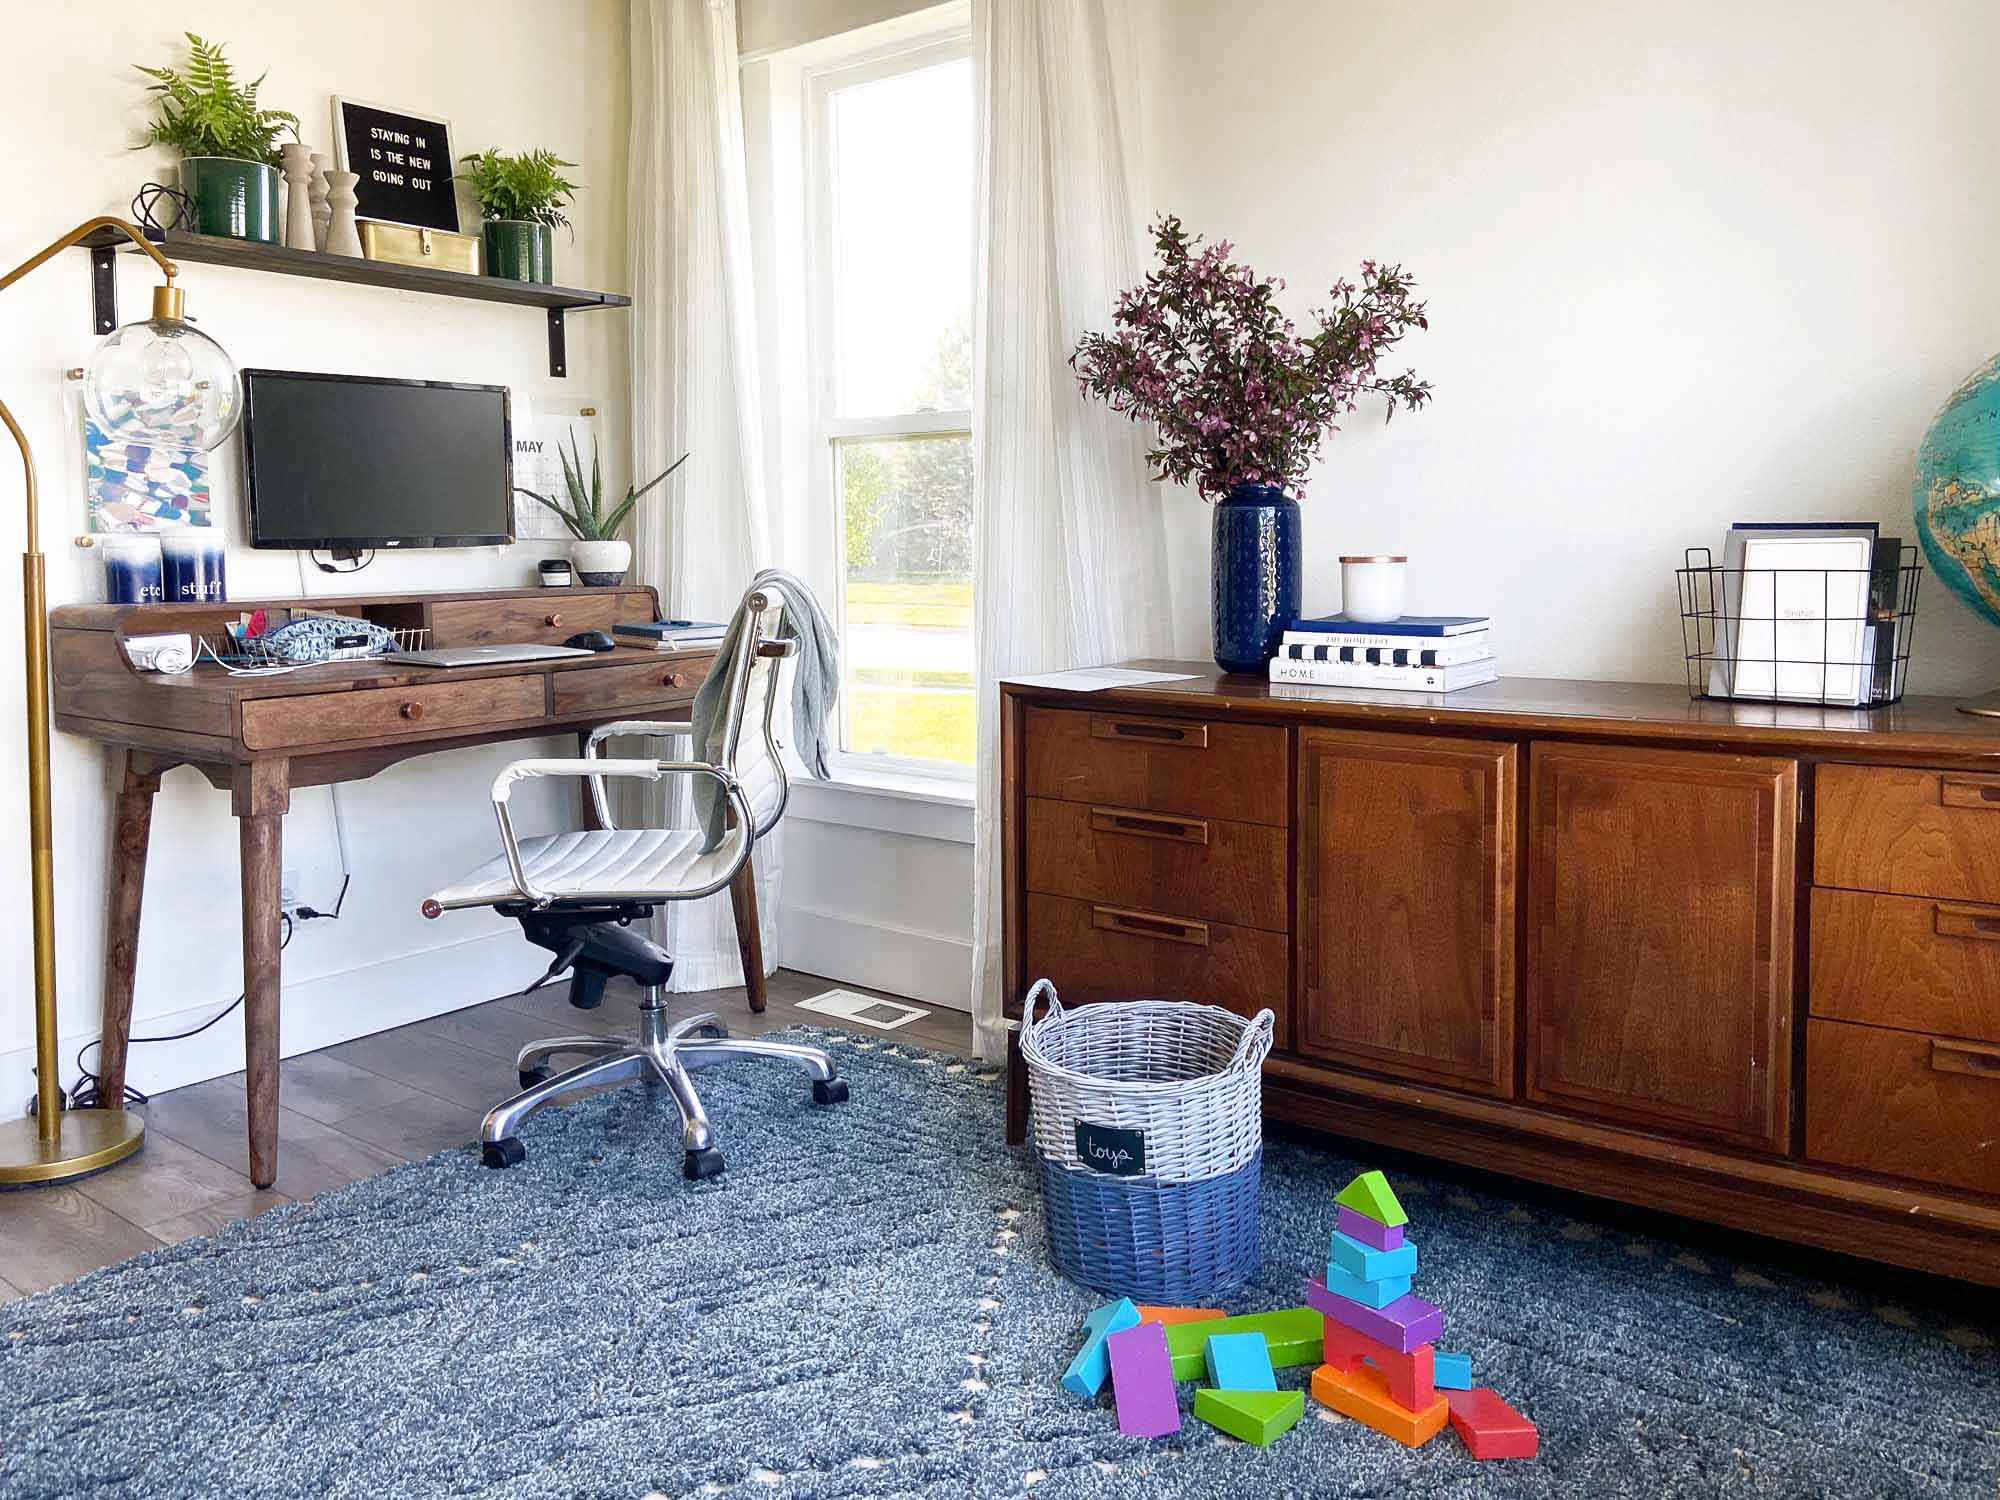 A home office doesn't need to feel separate and sterile, this inspiring home office shows how you can work and play surrounded by your family.